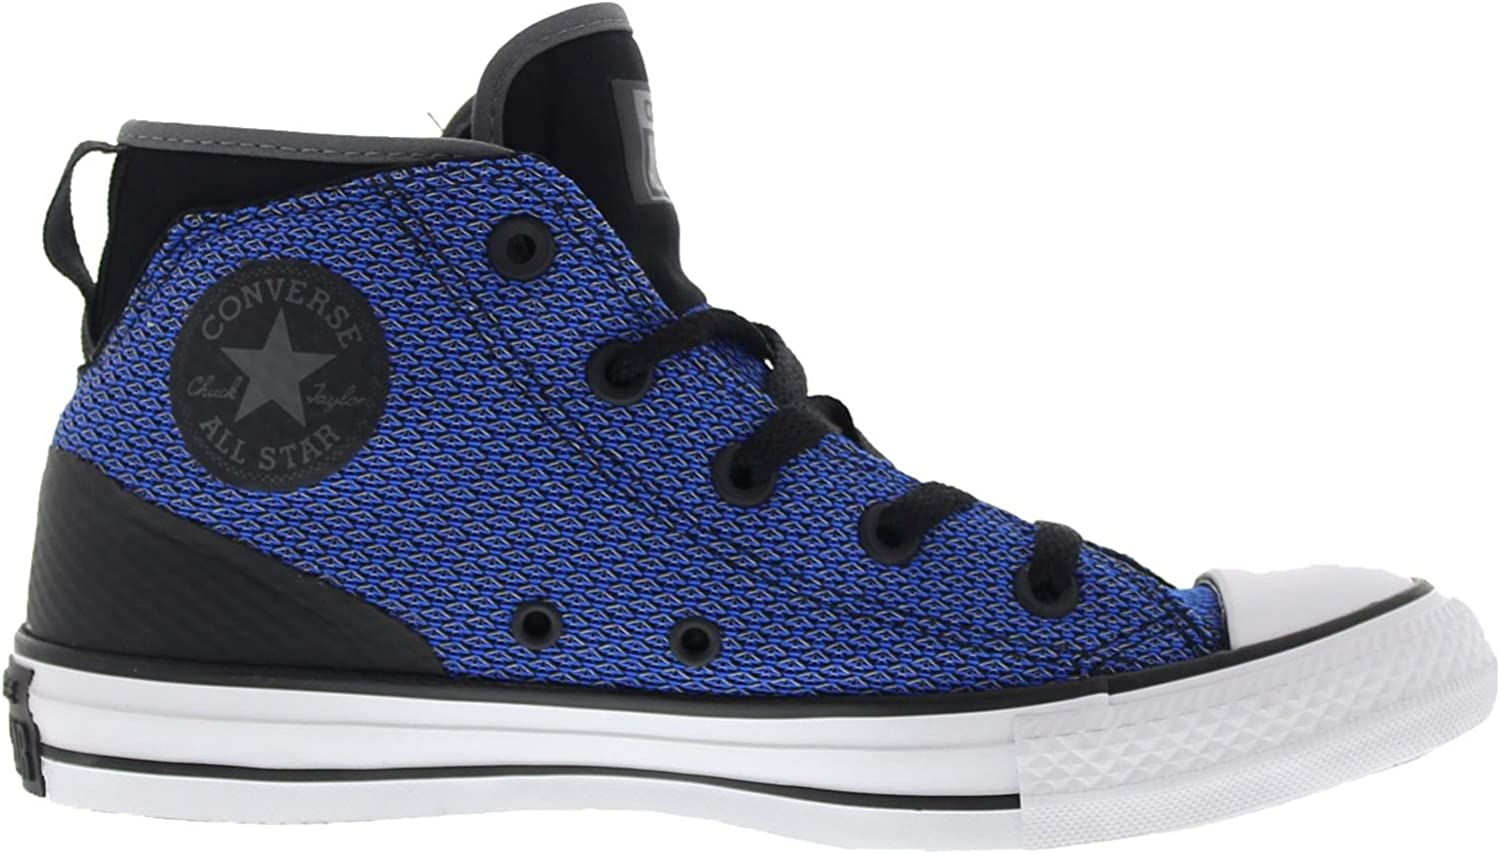 Converse Womens Chuck Taylor All Star Syde Street Mid Mesh Trainers